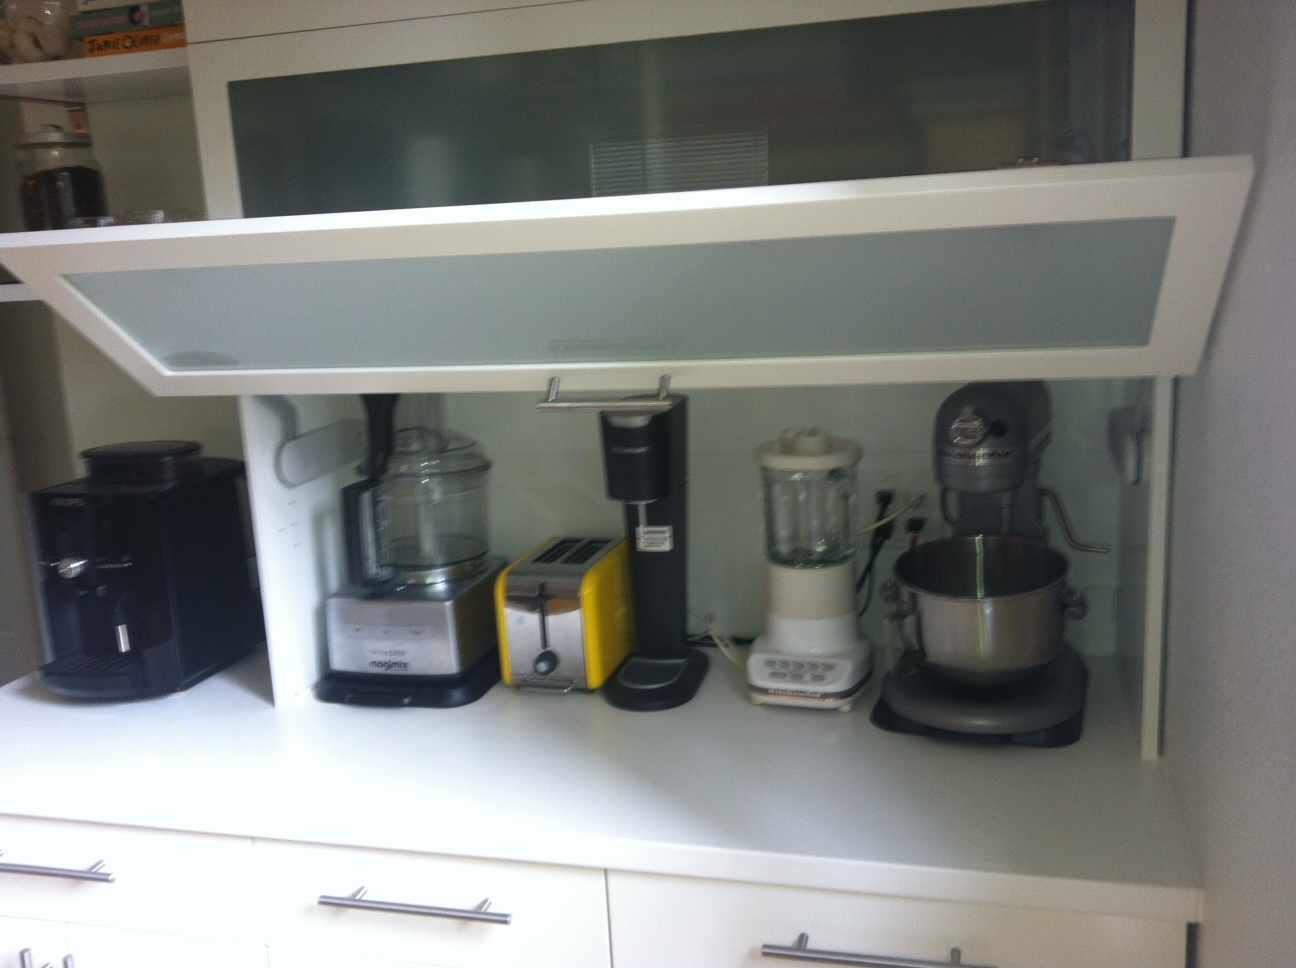 Kitchen Cabinets Appliance Garage Kitchen Appliance Garage Via Ikea Hackers Tarzy Blogja